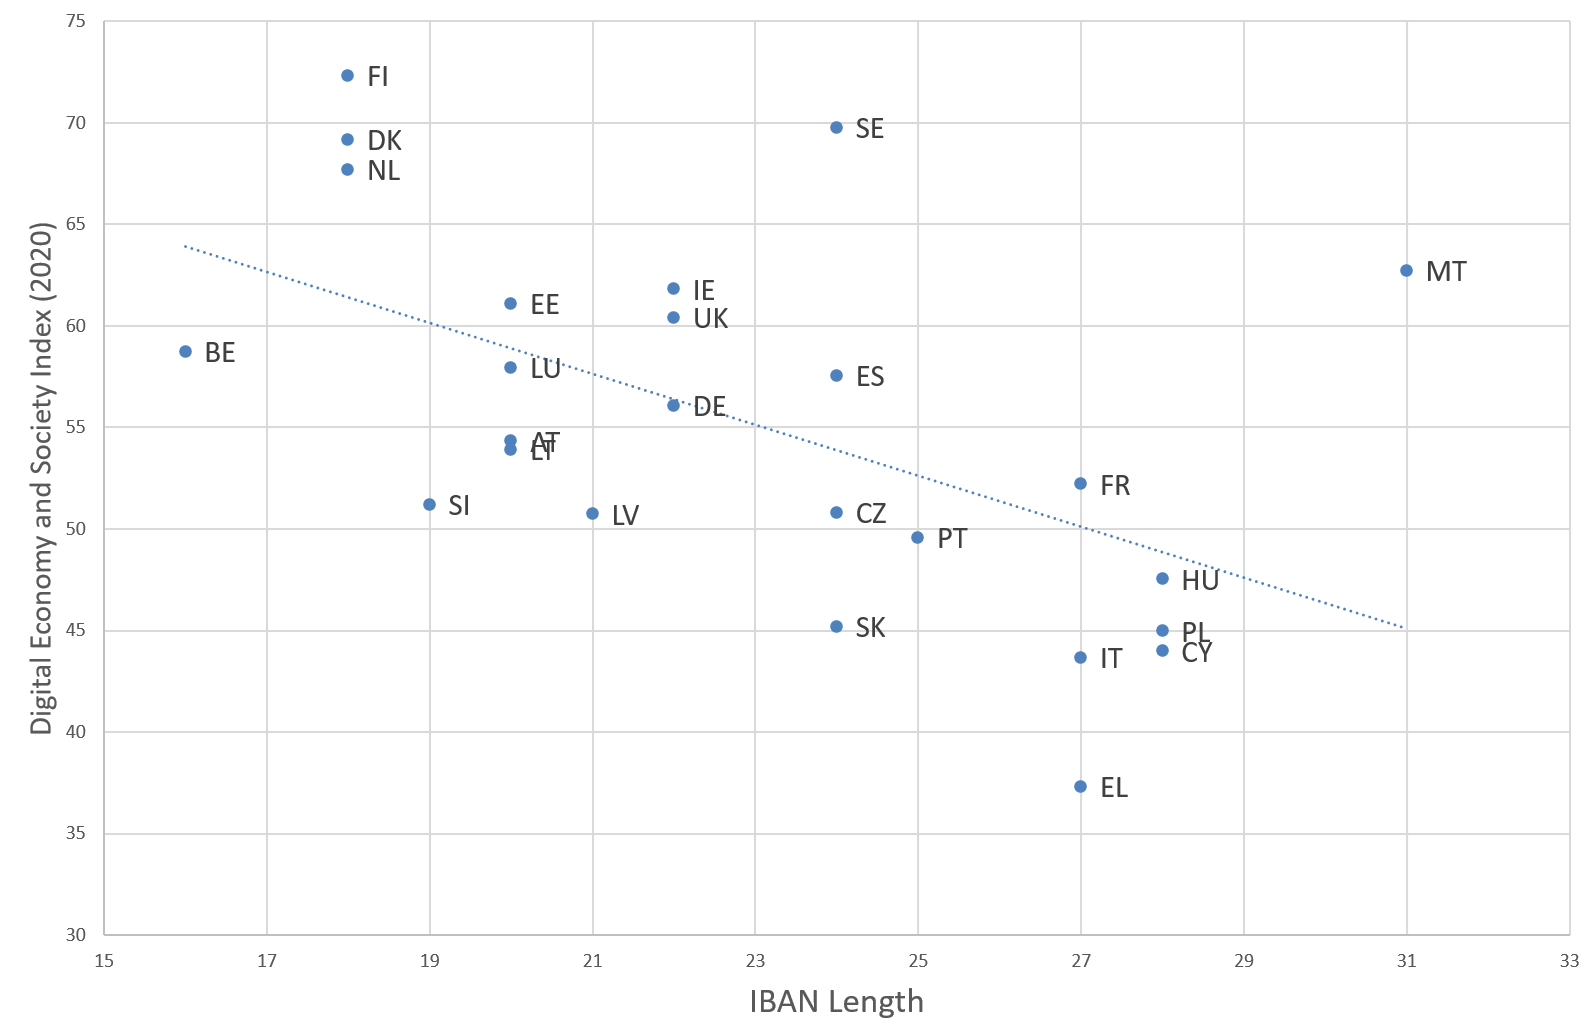 DESI score vs IBAN length